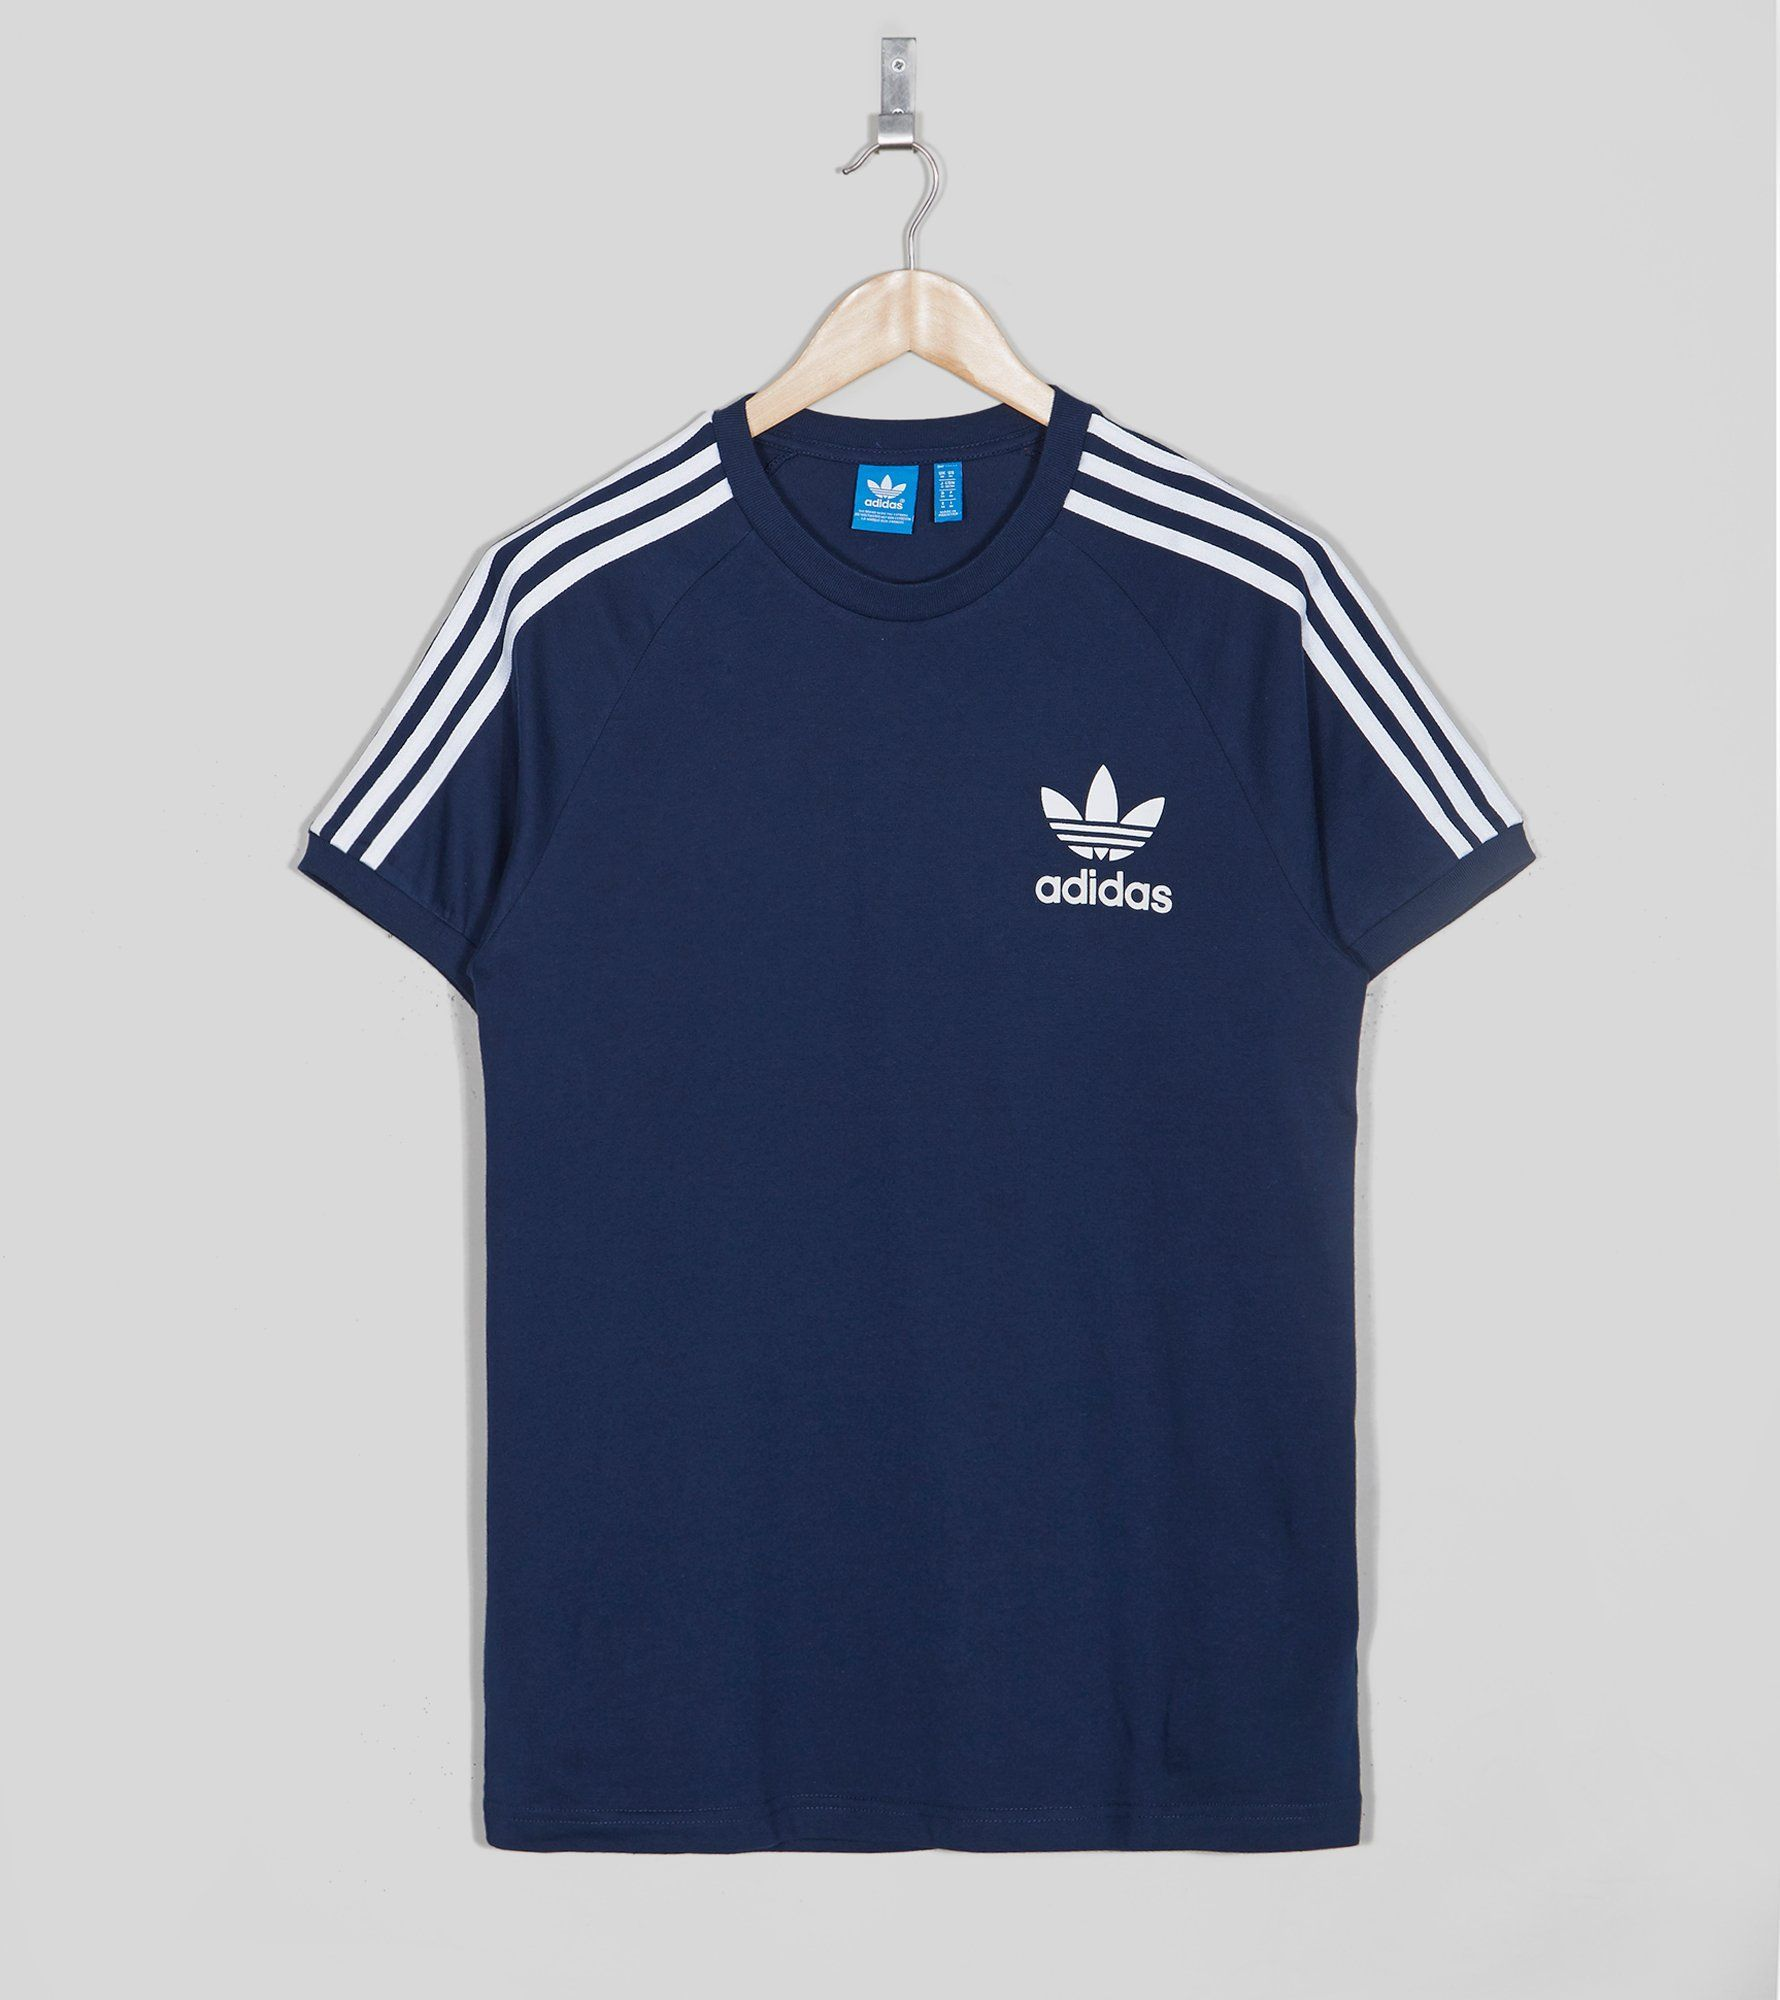 adidas Originals California T-Shirt | Size?